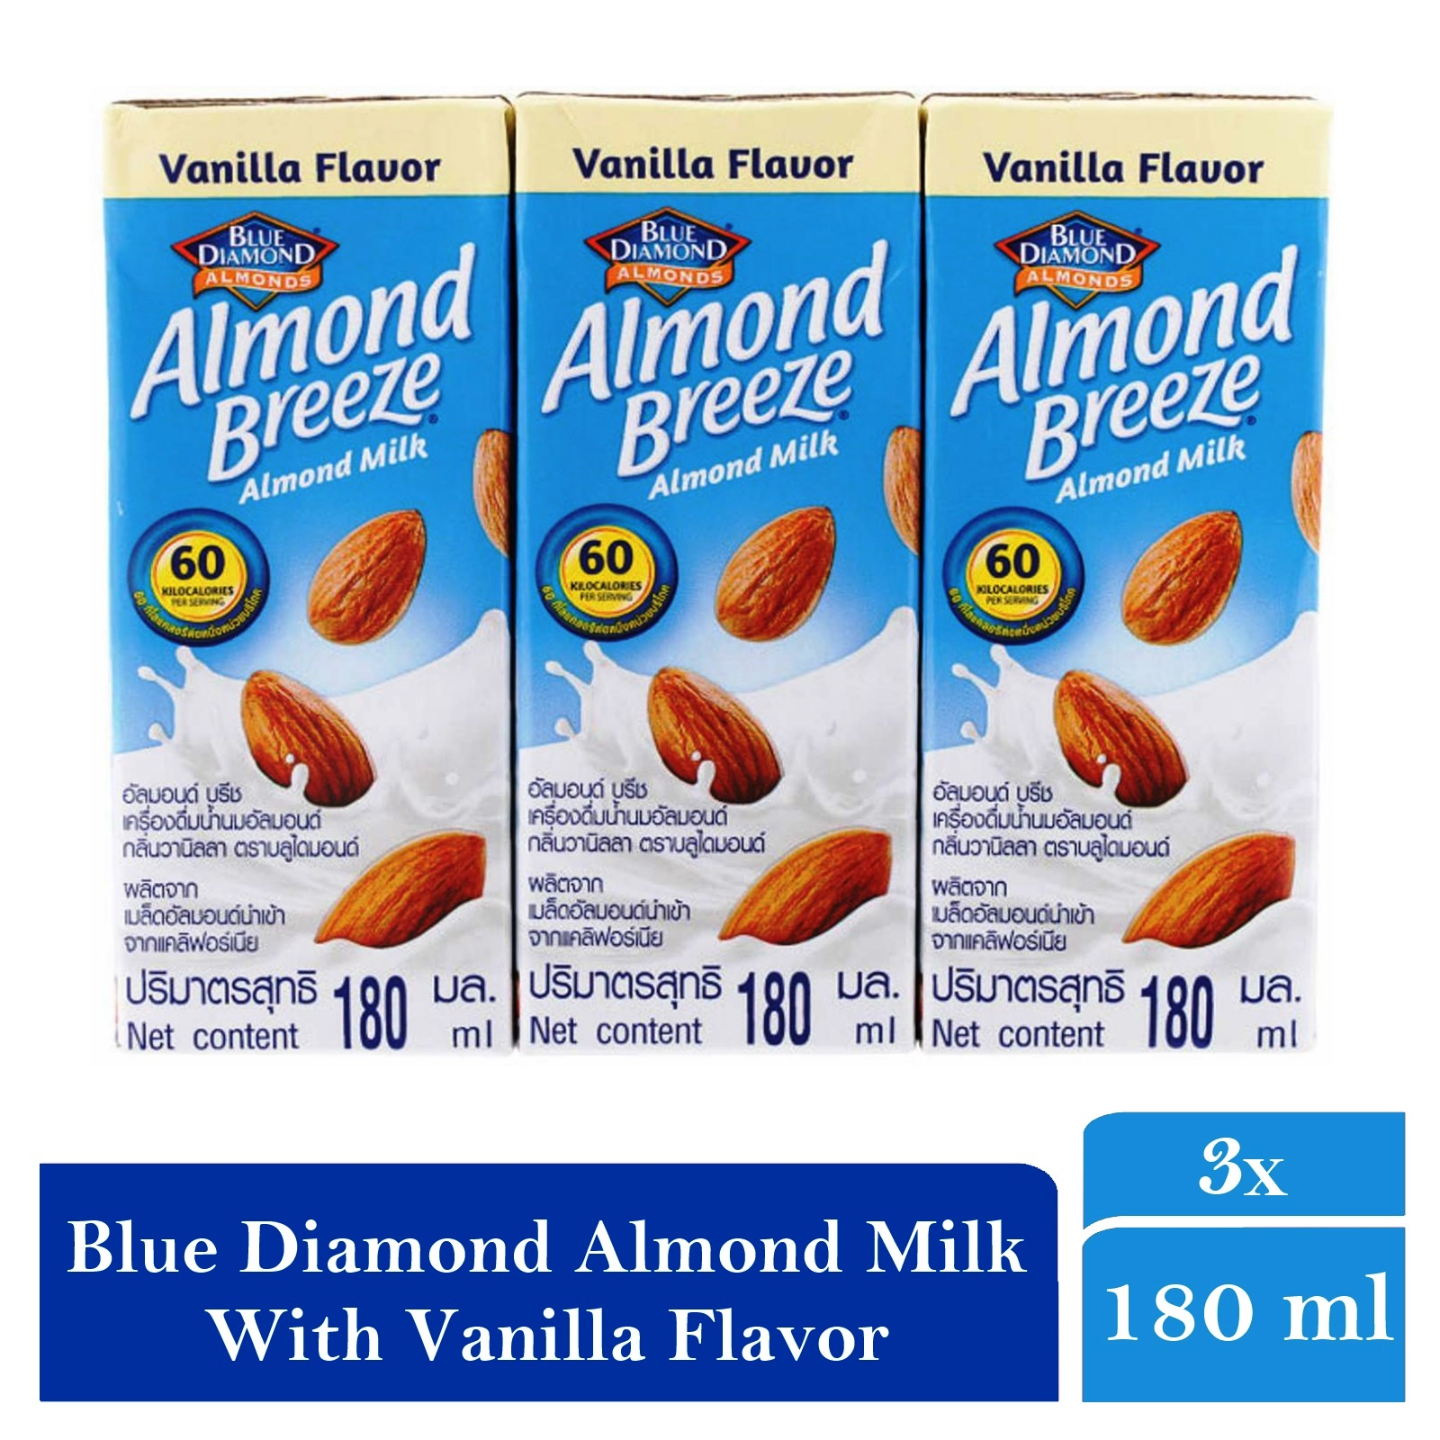 Blue Diamond Almond Breeze Almond Milk With Vanilla Flavor 3 x 180ml